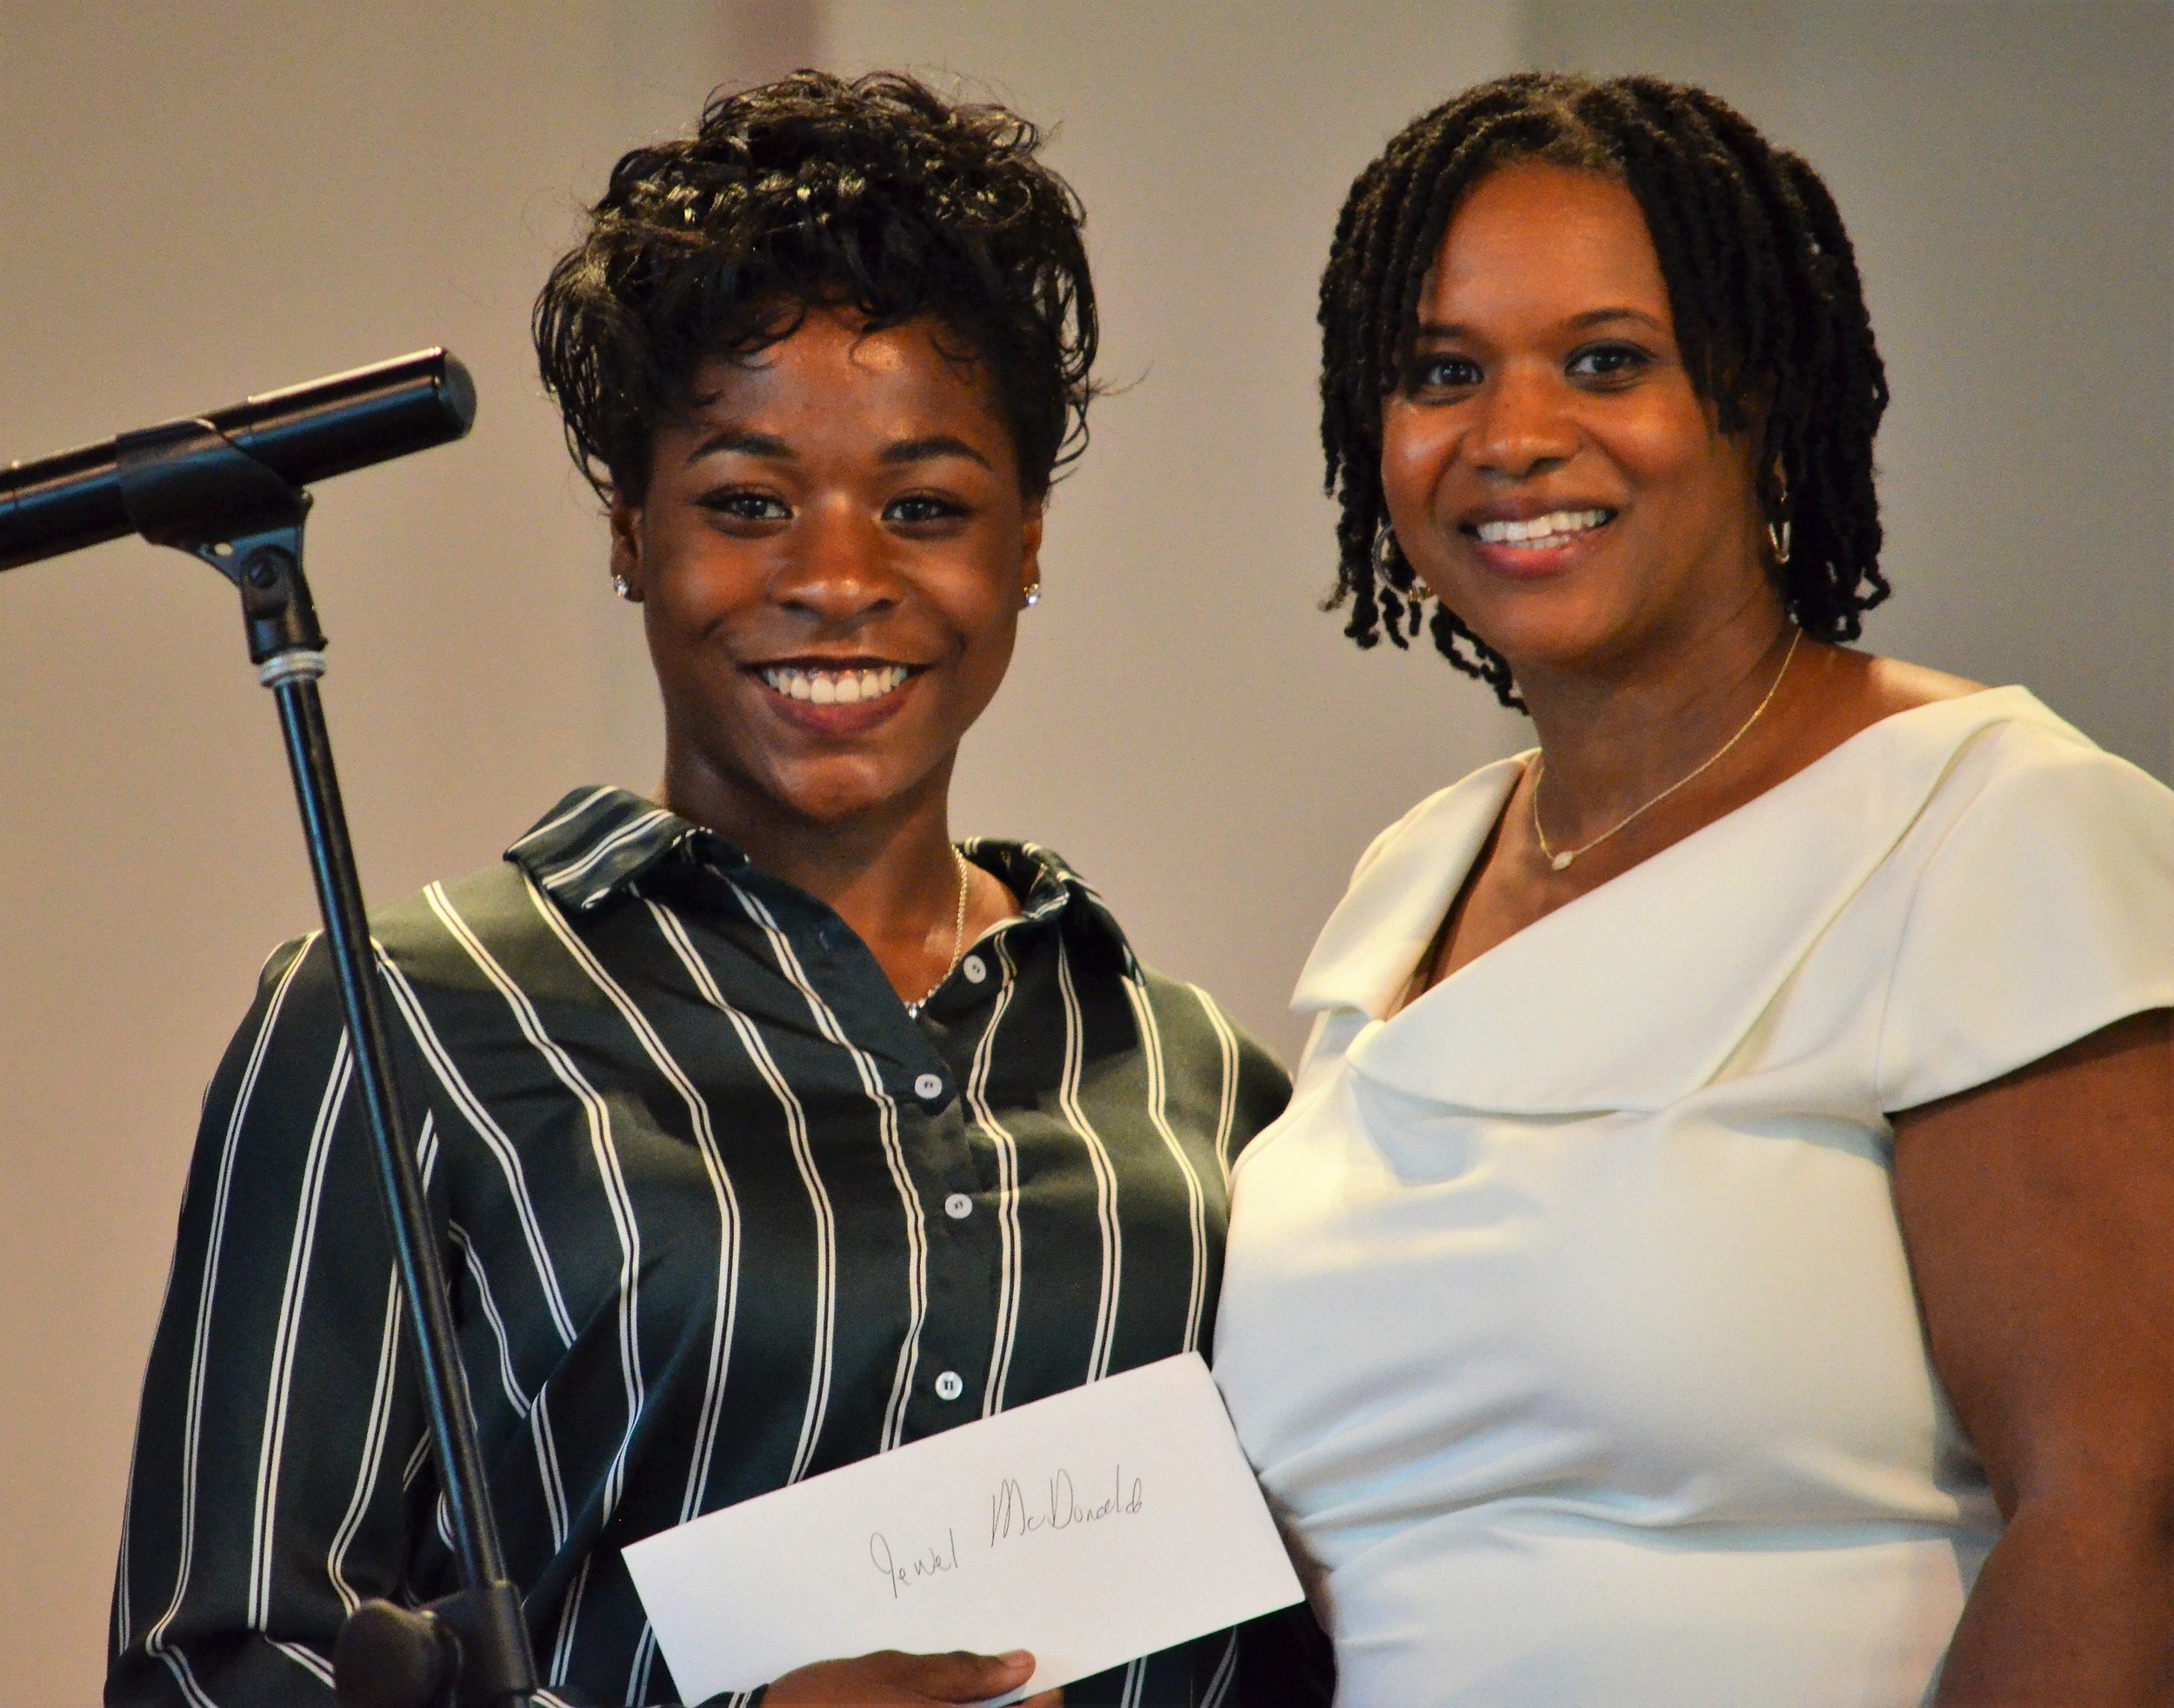 - Jewel McDonald accepts the Dr. Jowava Morrow Book Scholarship Award from Yaminah Leggett-Wells, daughter and family representative of Dr. Jowava Morrow. Jewel is attending North Carolina A&T State University in Greensboro, N.C.